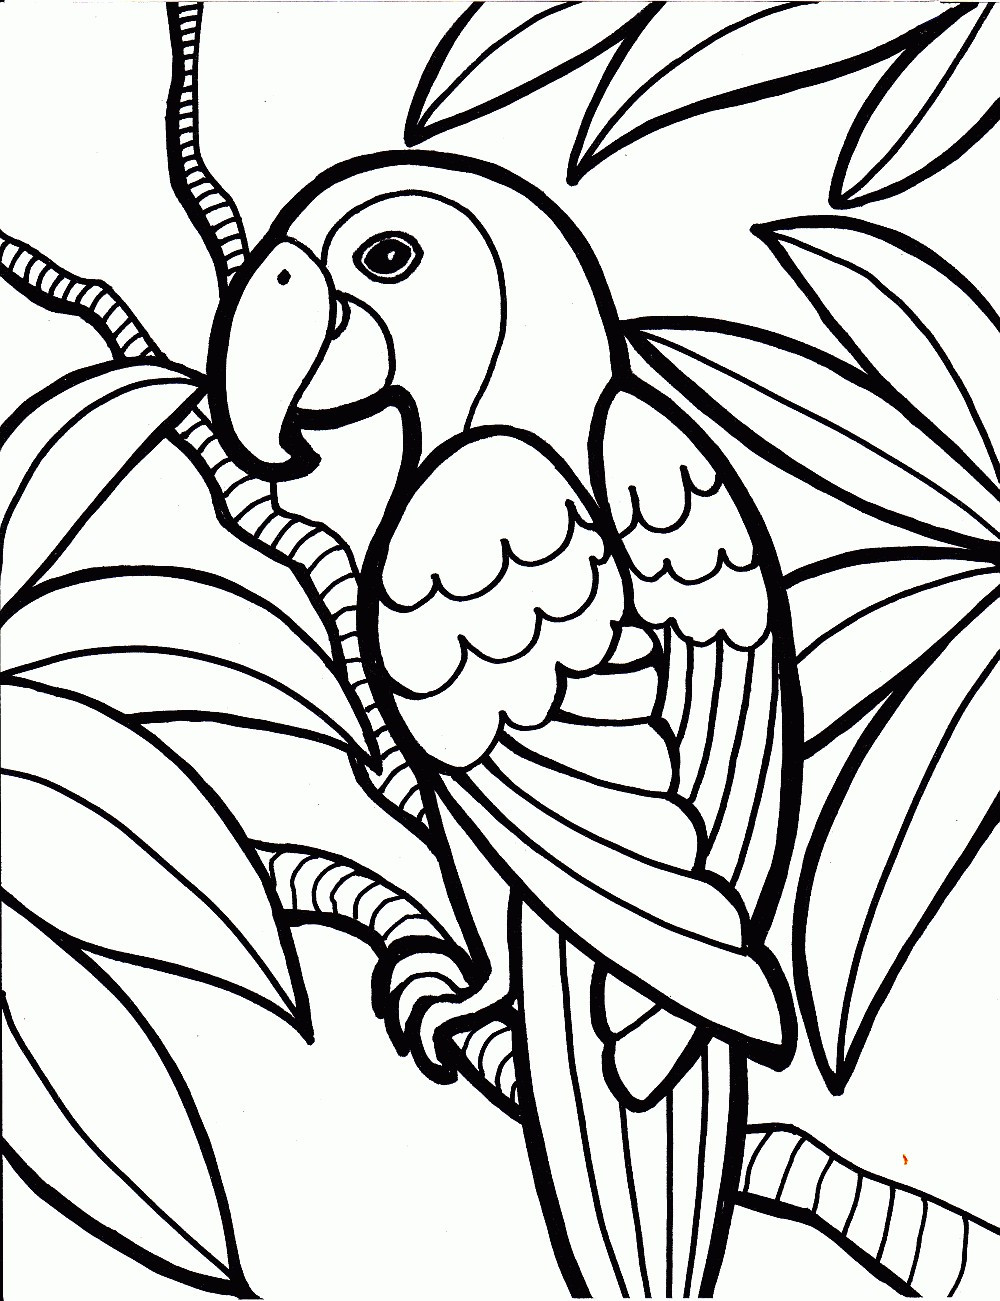 Coloring Pages For Kids Birds  Free Printable Parrot Coloring Pages For Kids